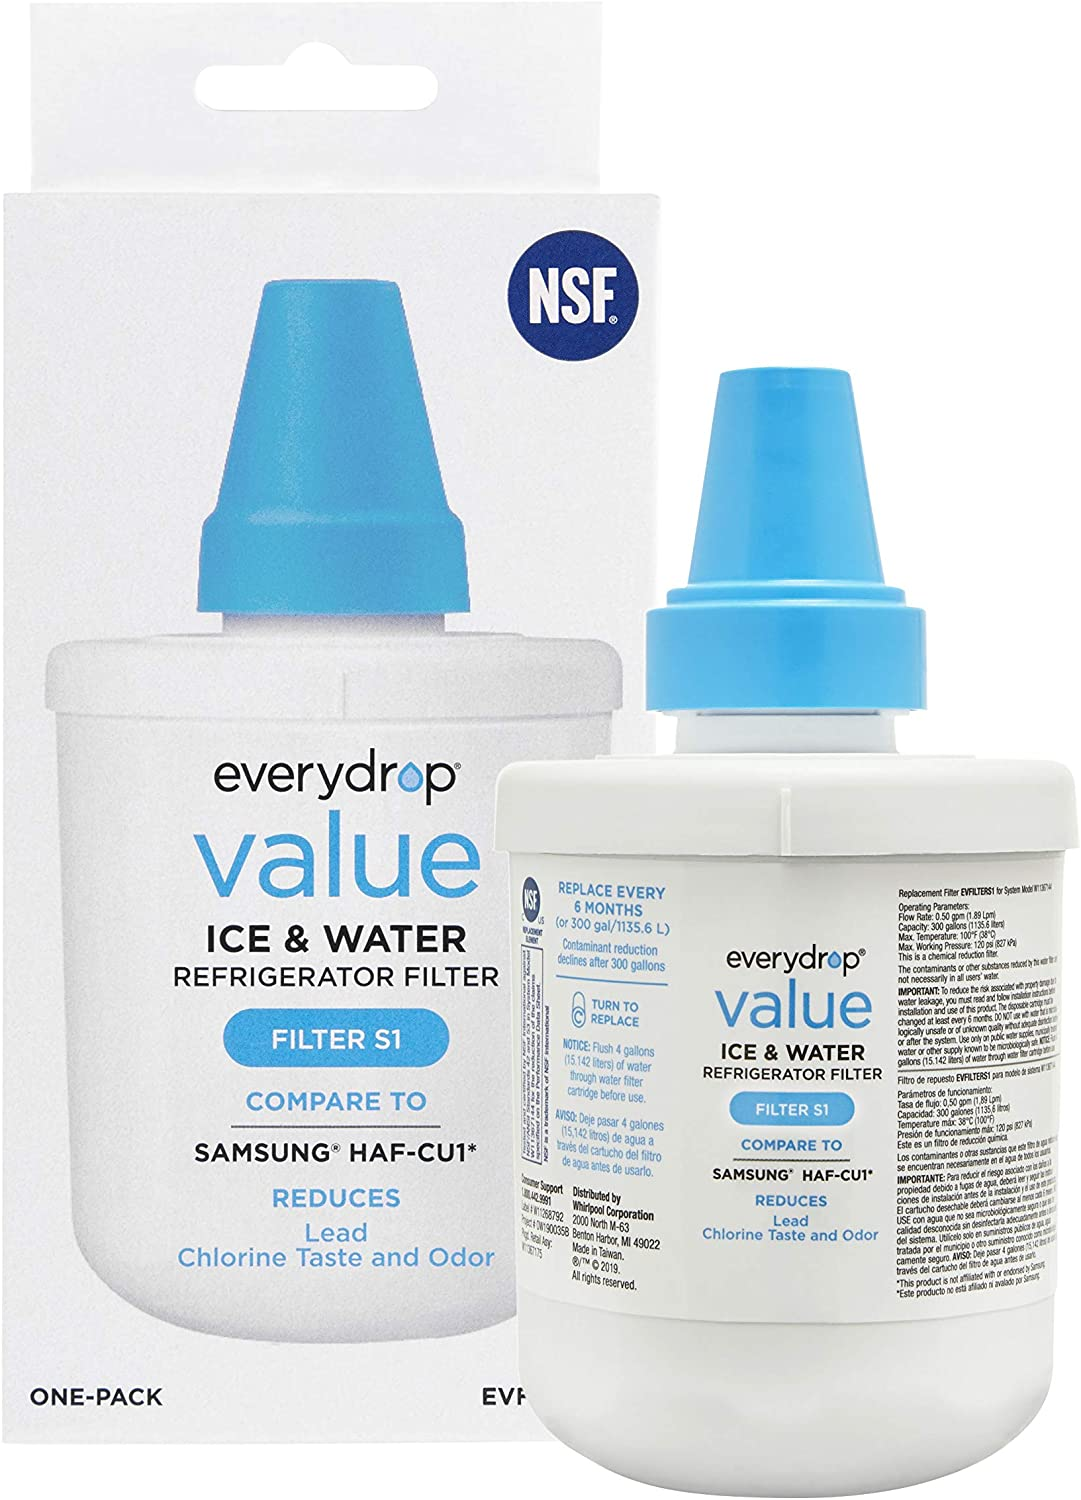 everydrop EVFILTERS1 replacement for Samsung DA29-00003G Refrigerator Water Filter, 1 Pack